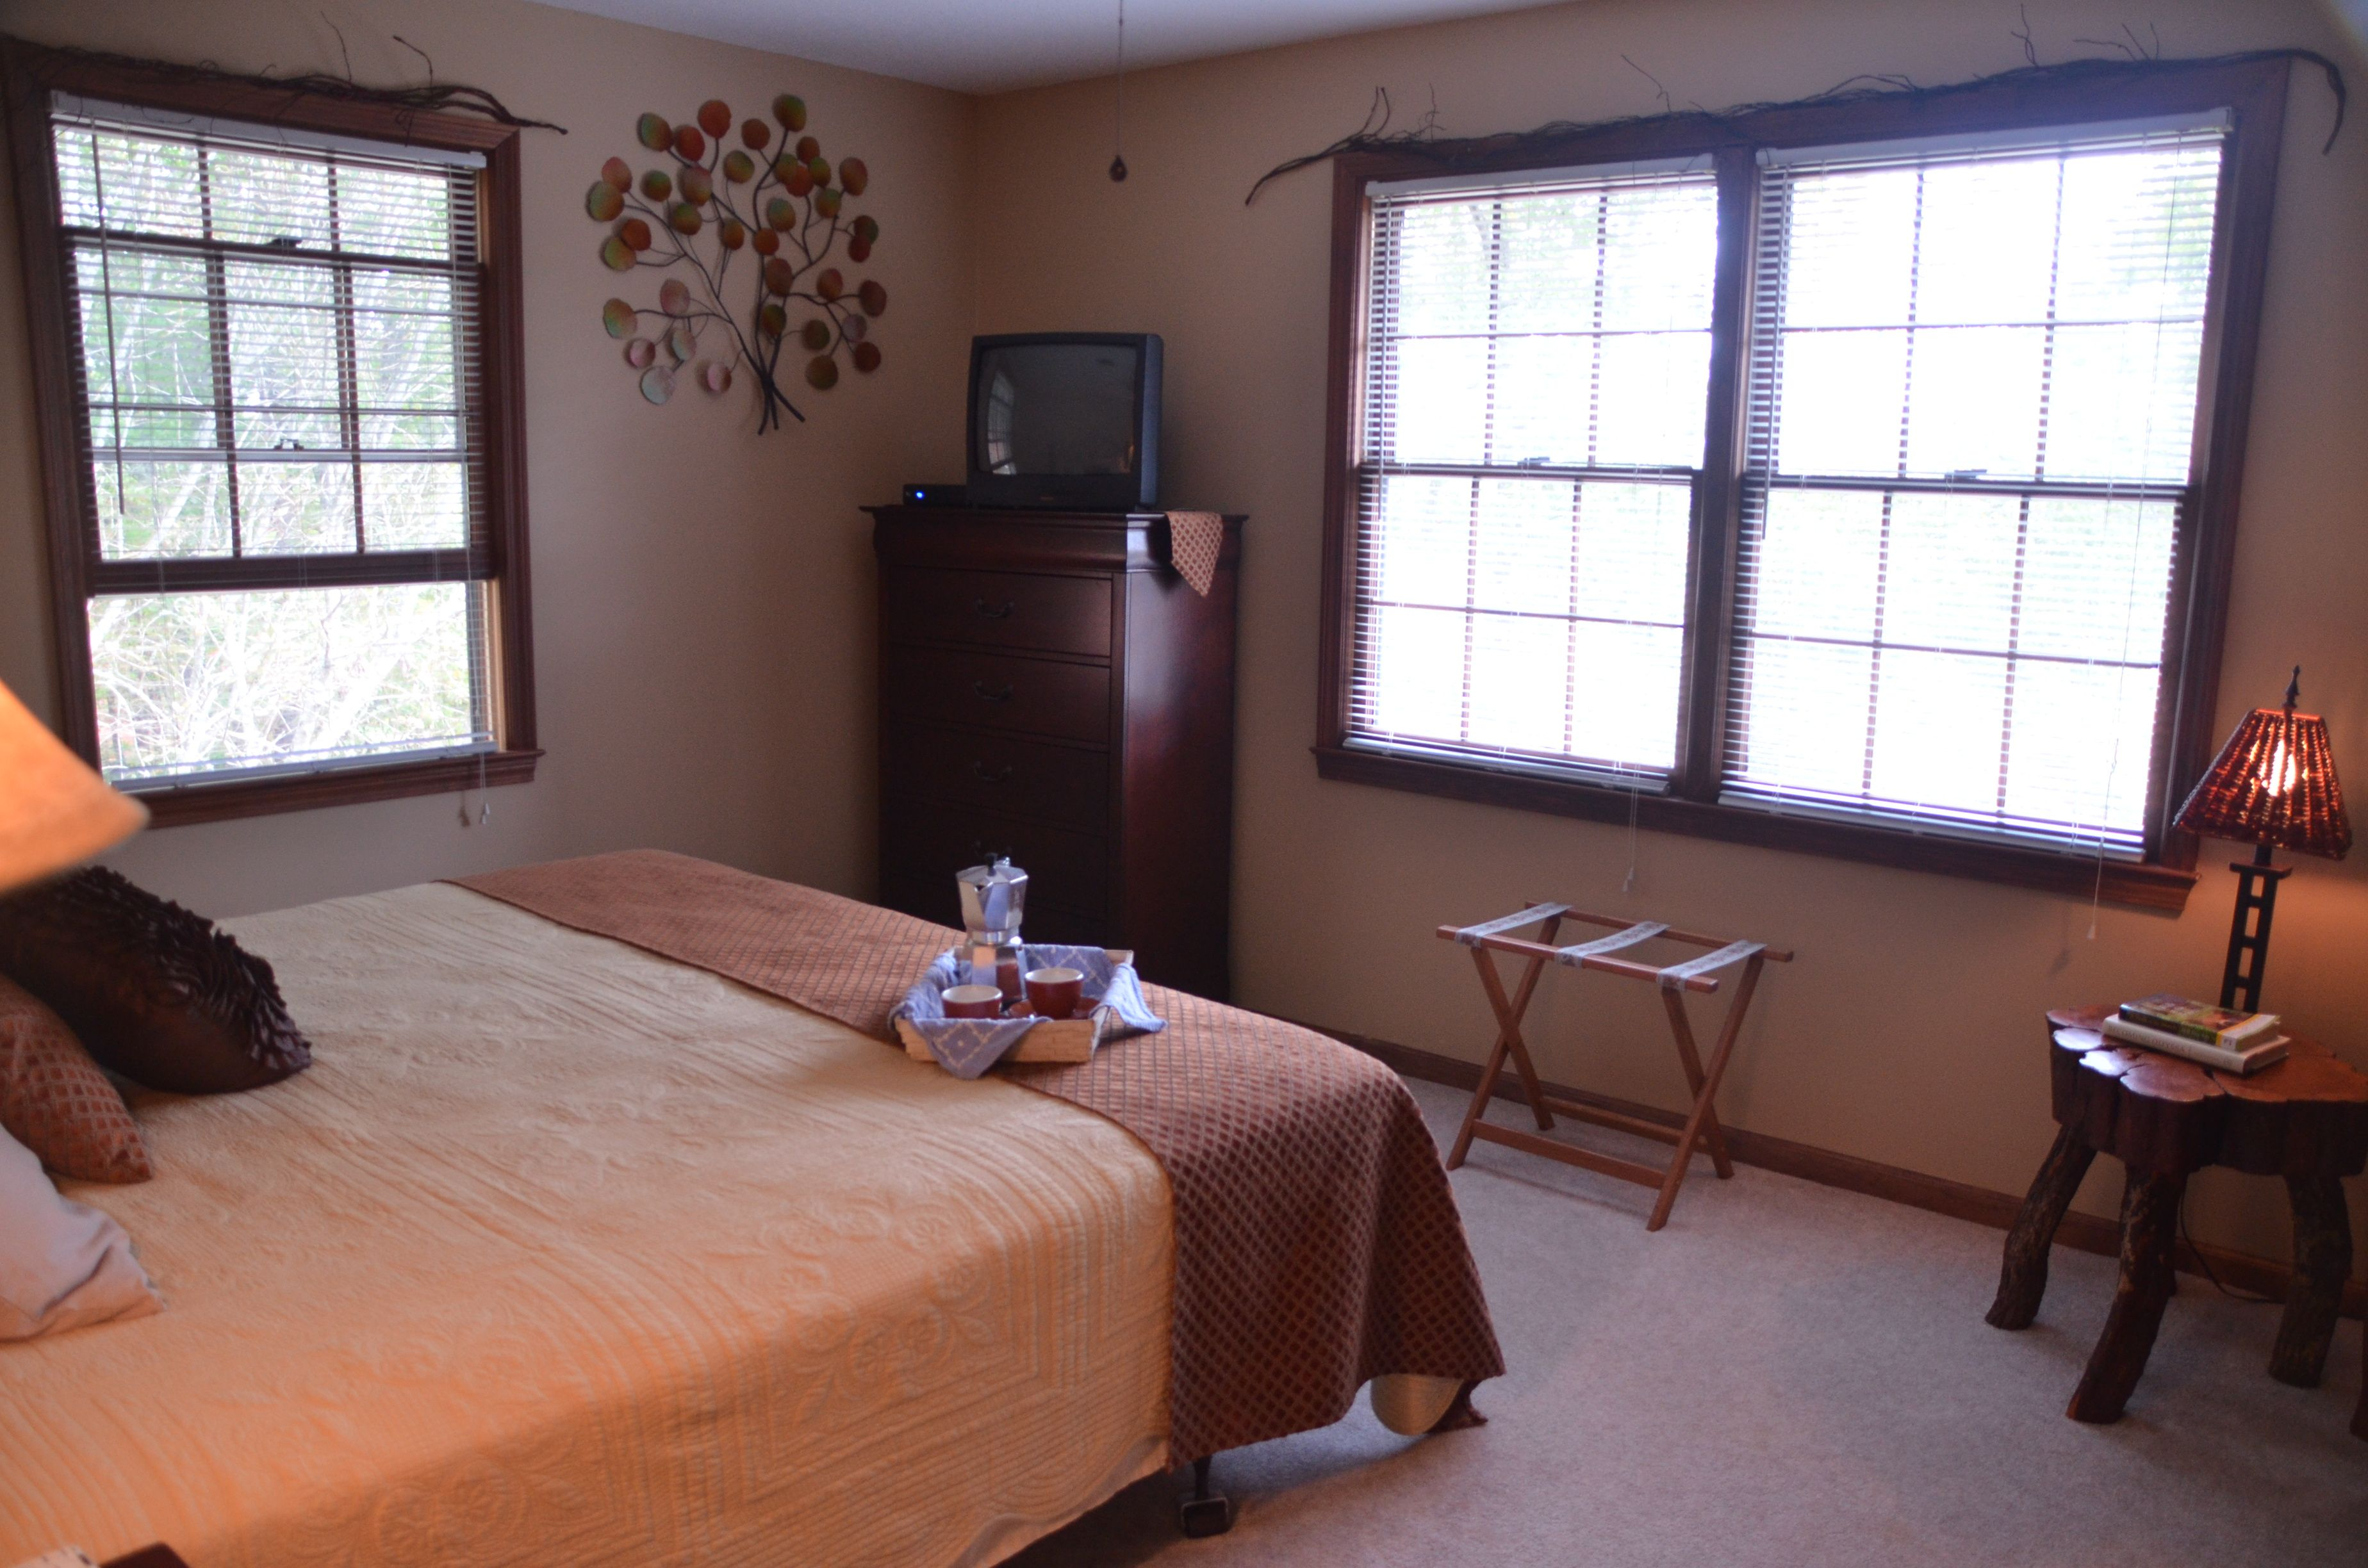 Master bedroom with a king size bed, Direct TV and a small